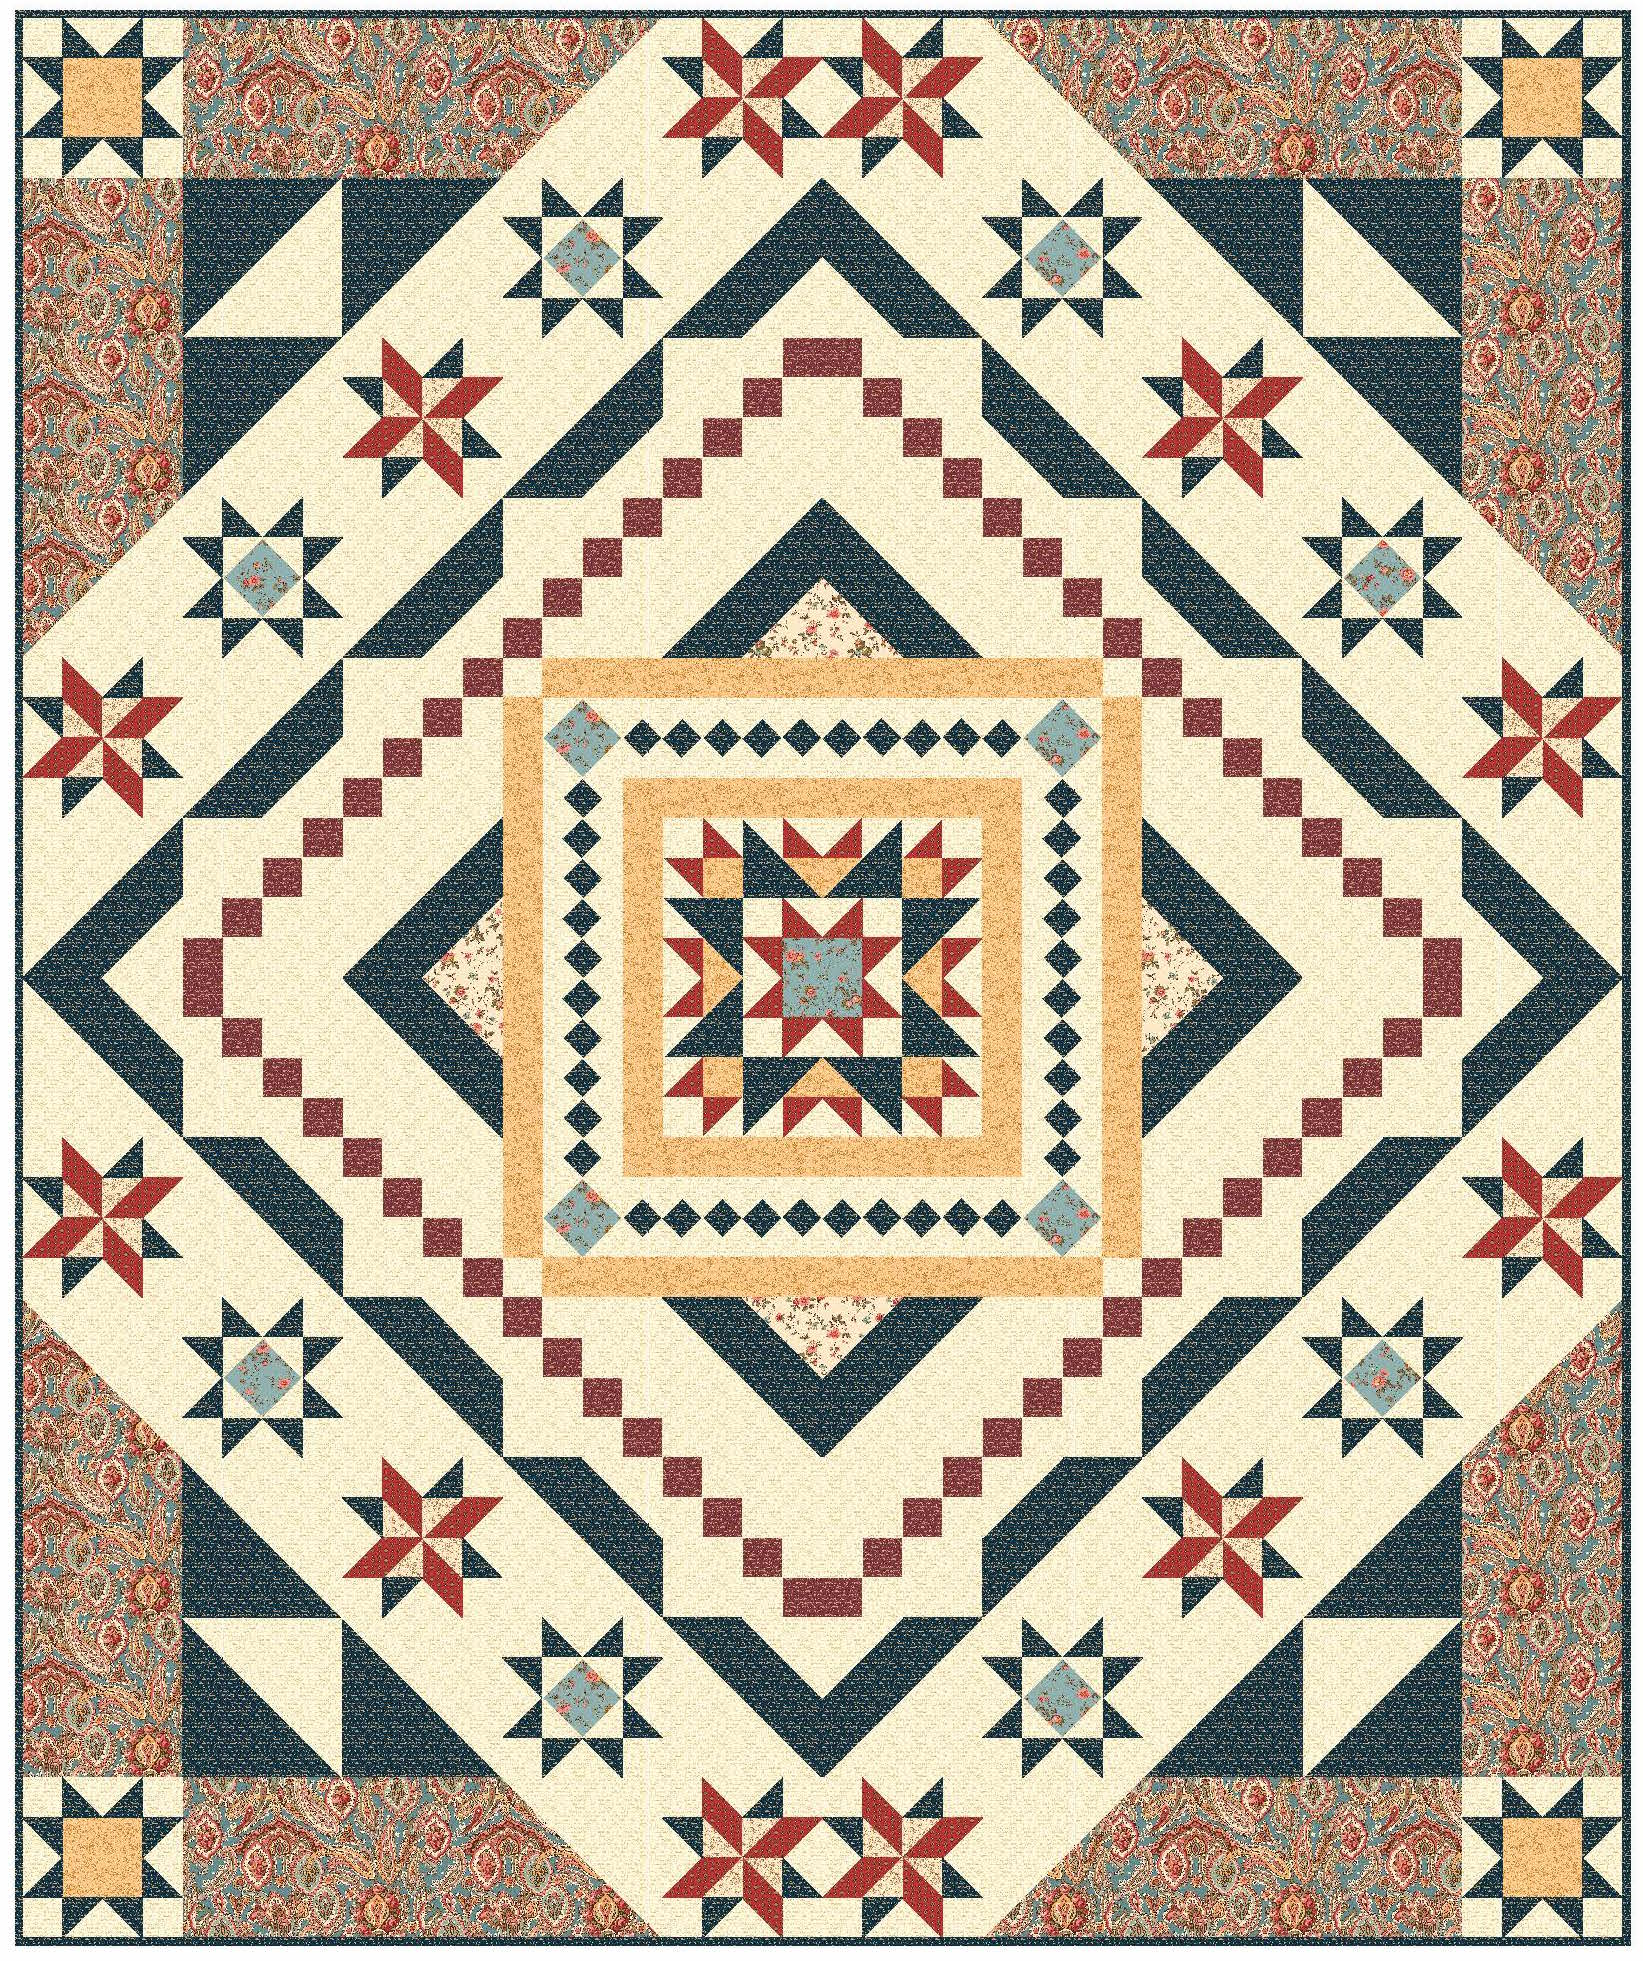 Essex BOM virtual quilt 4 Block of the Month Quilts to Make in 2017